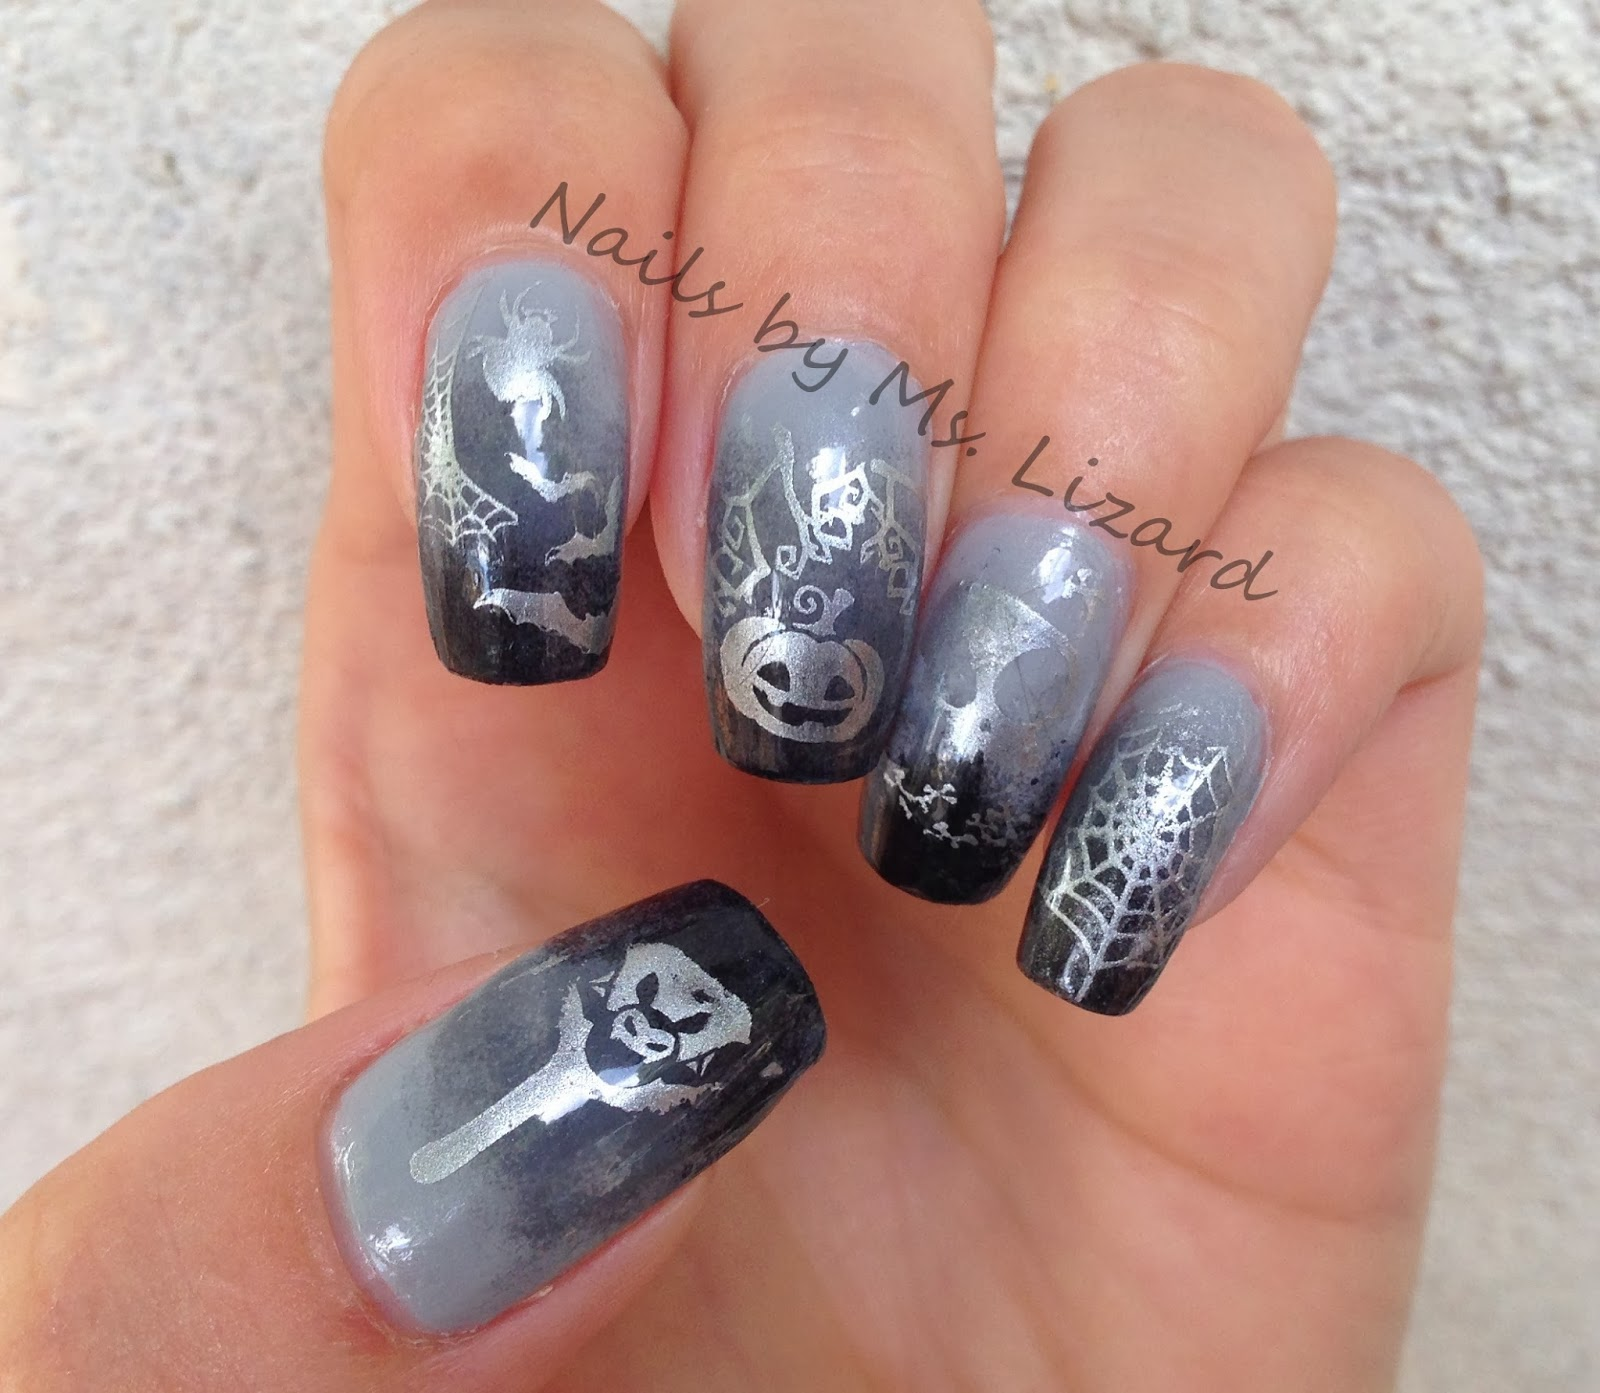 Nails by ms lizard ms lizards super awesome halloween nail art ms lizards super awesome halloween nail art contest prinsesfo Choice Image